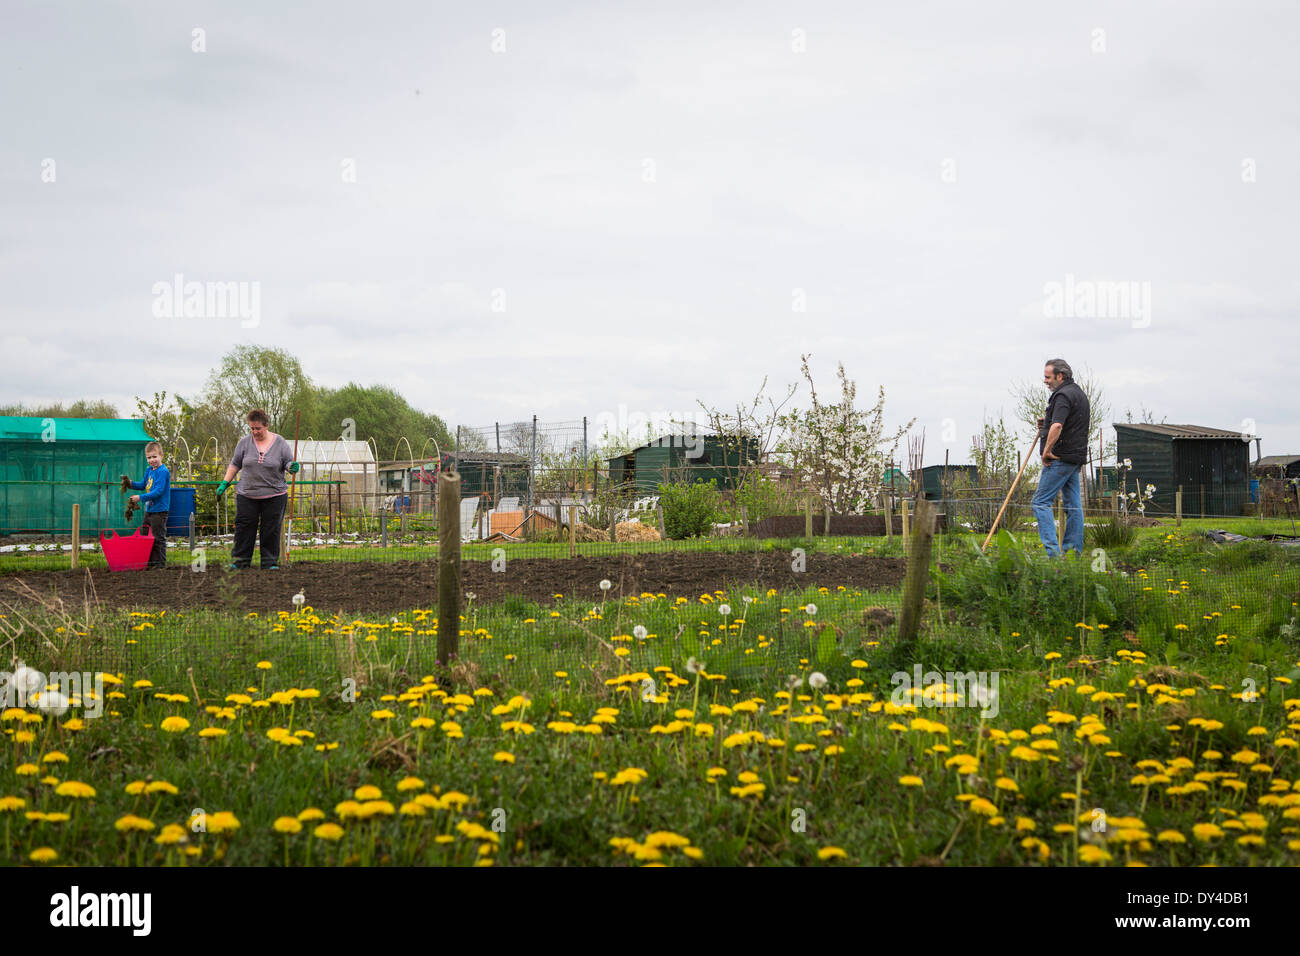 Family gardening in spring in their allotment garden - Stock Image